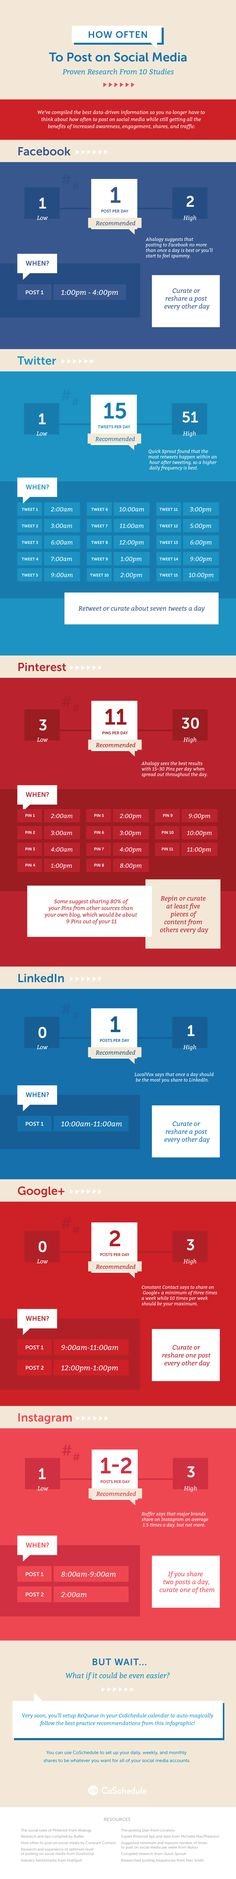 How Often To Post on Social Media #infographic #SocialMedia Social Media #Facebook #Twitter #Pinterest #Linkedin #Google+ #Instagram